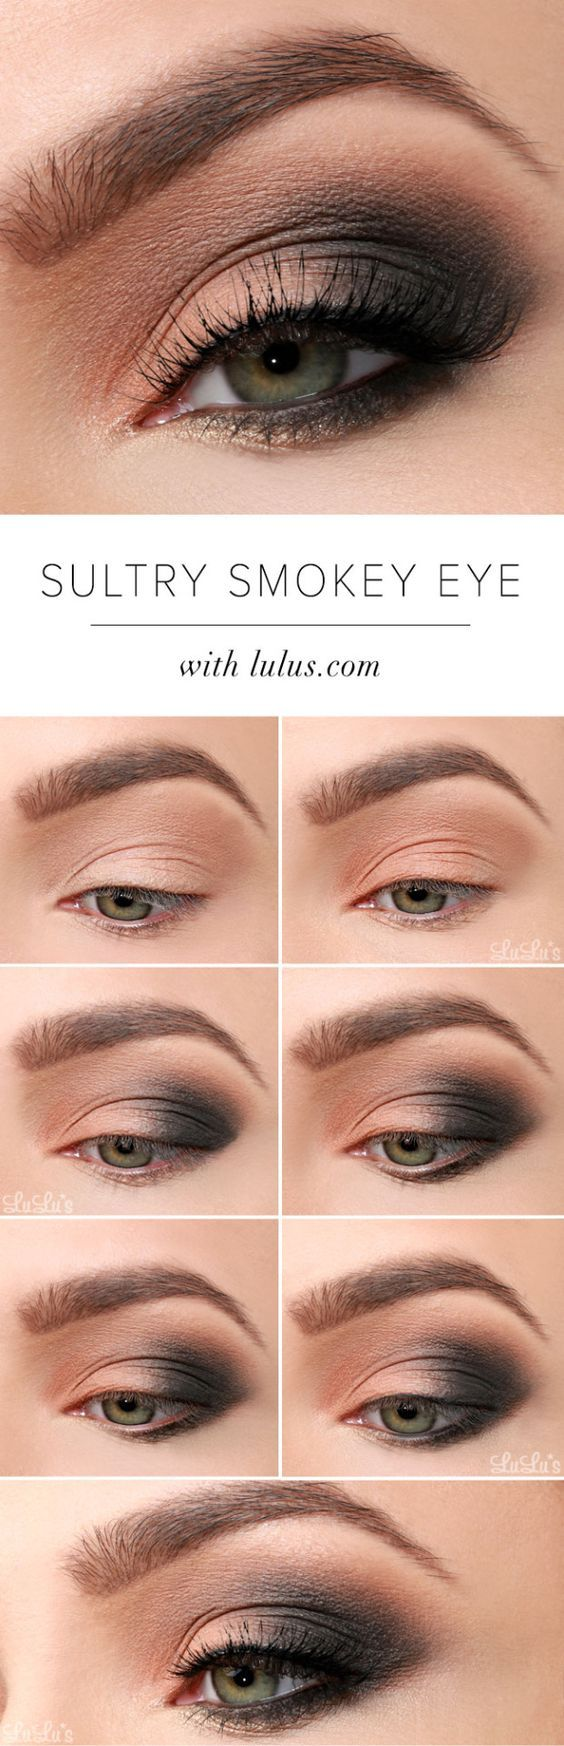 425 best makeup tips & looks images on pinterest | beauty tips